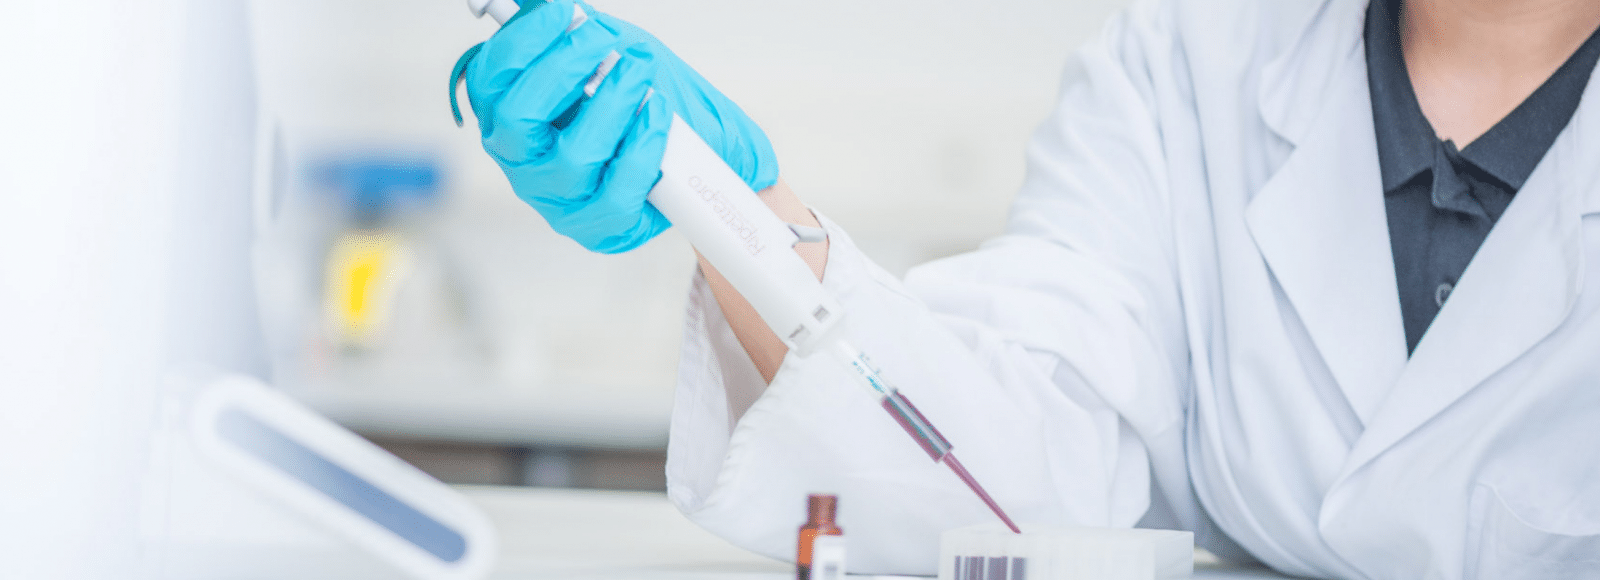 A researcher using a pipette and pipette tip from Ritter Medical in the lab